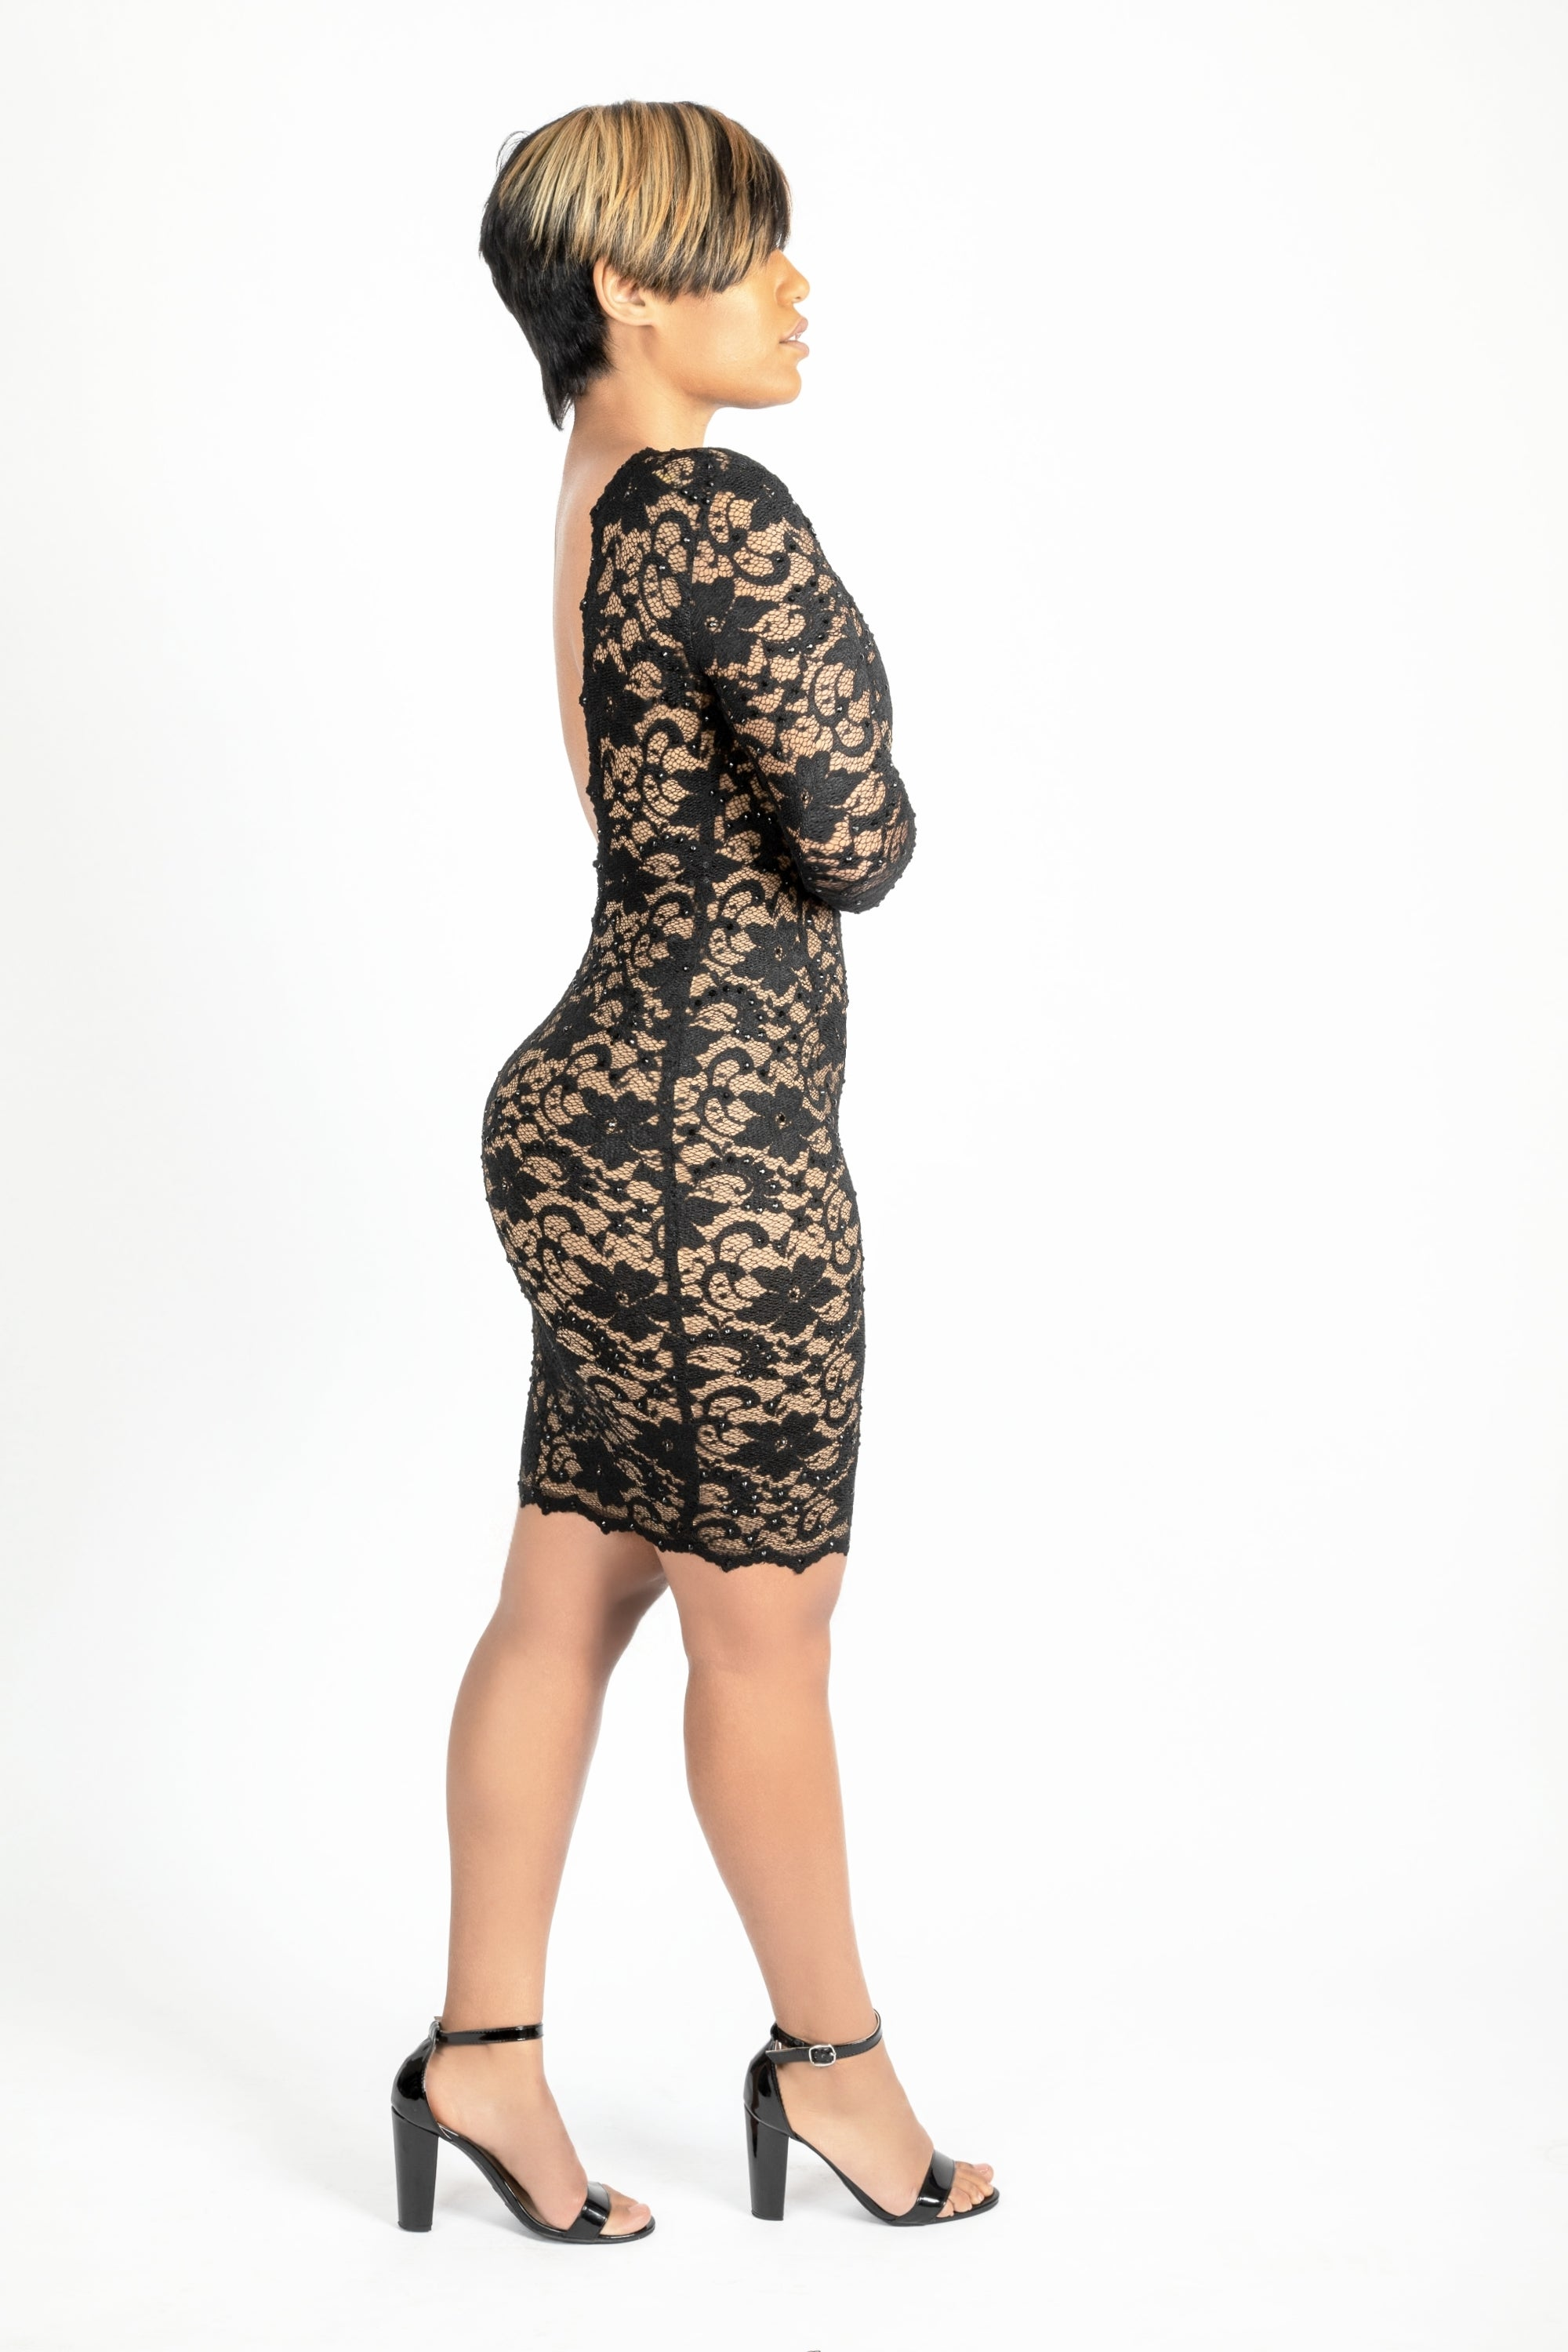 Open back black lace dress with crystals